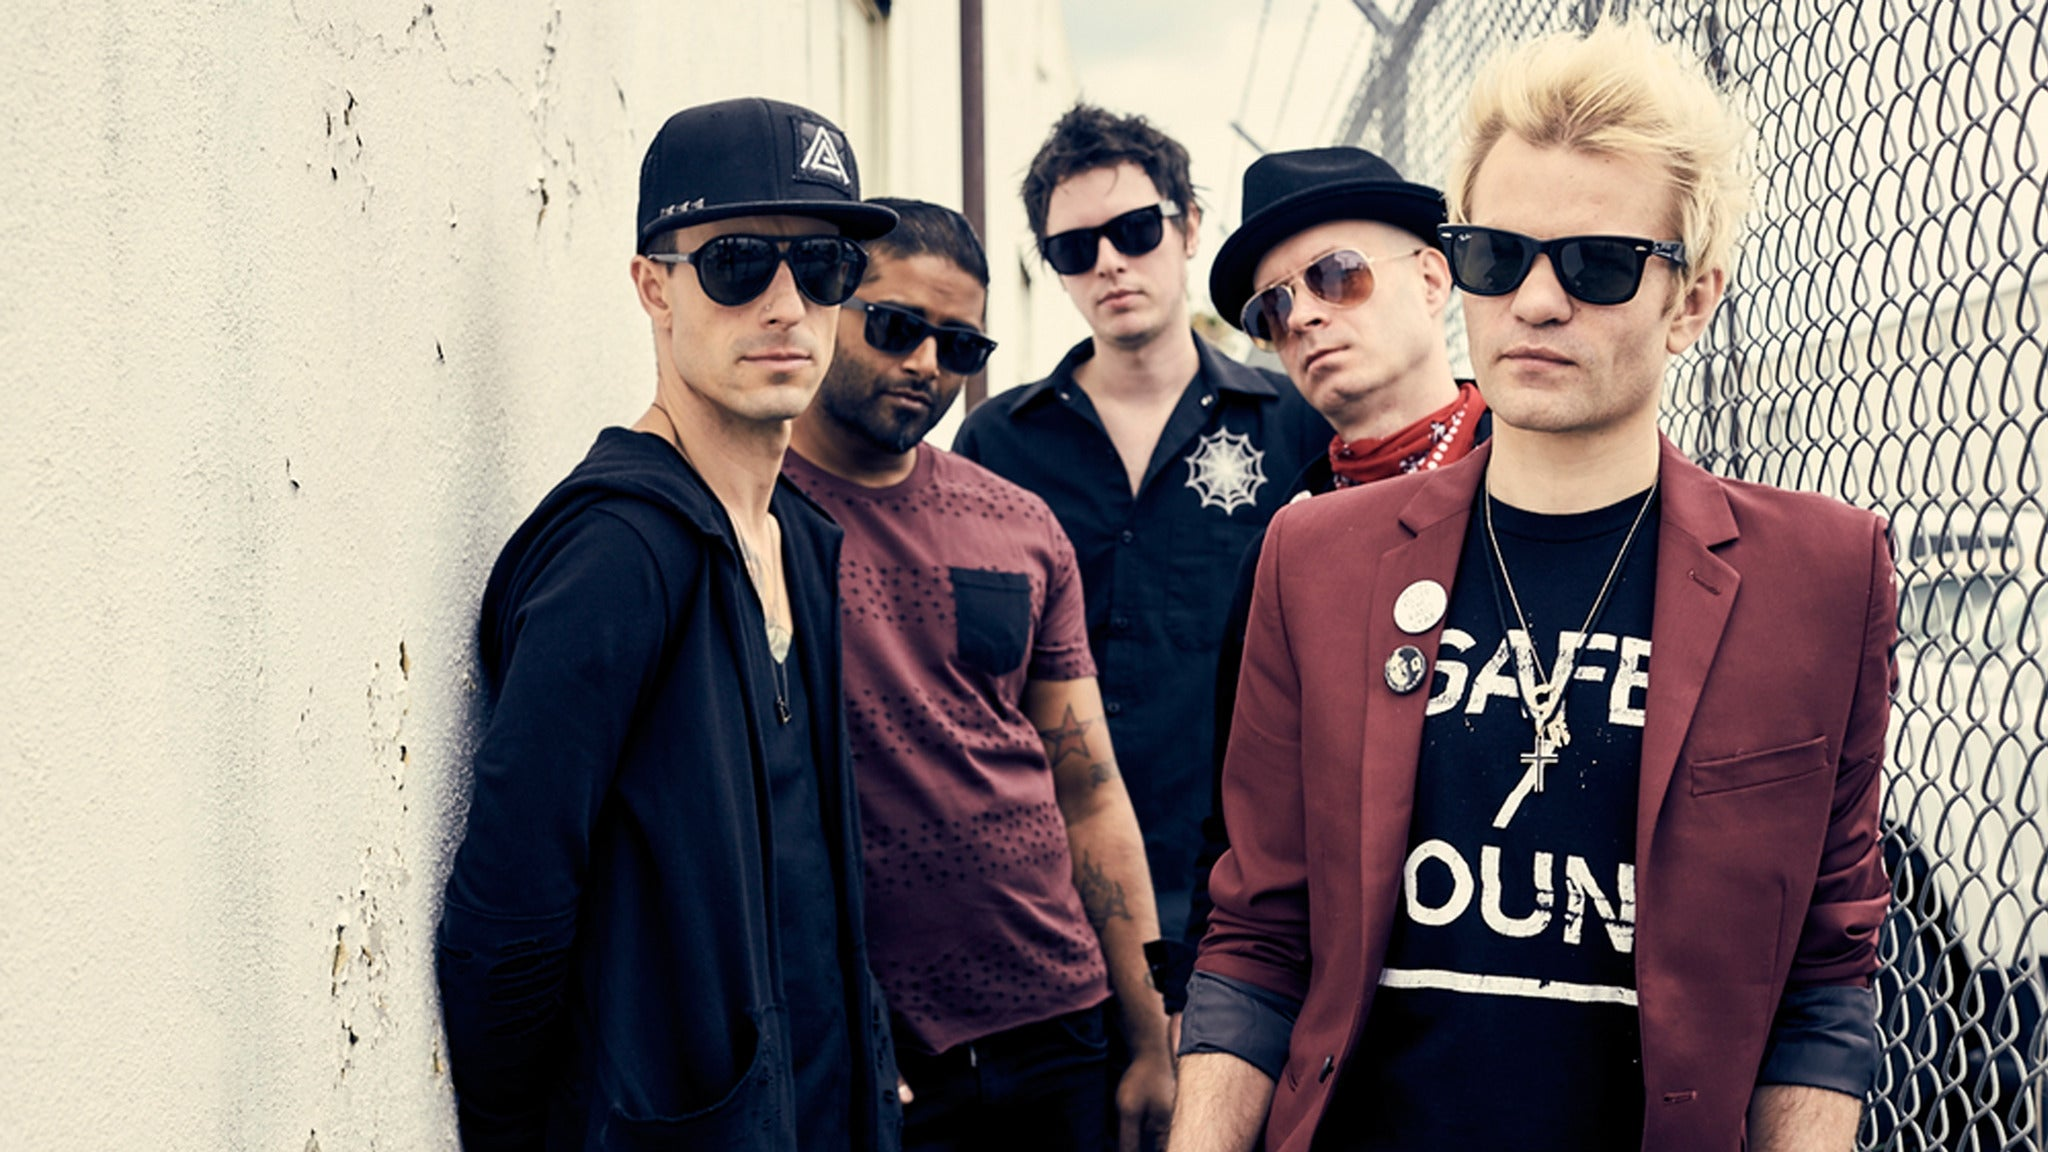 Sum 41's Don't Call It A Sum-Back Tour